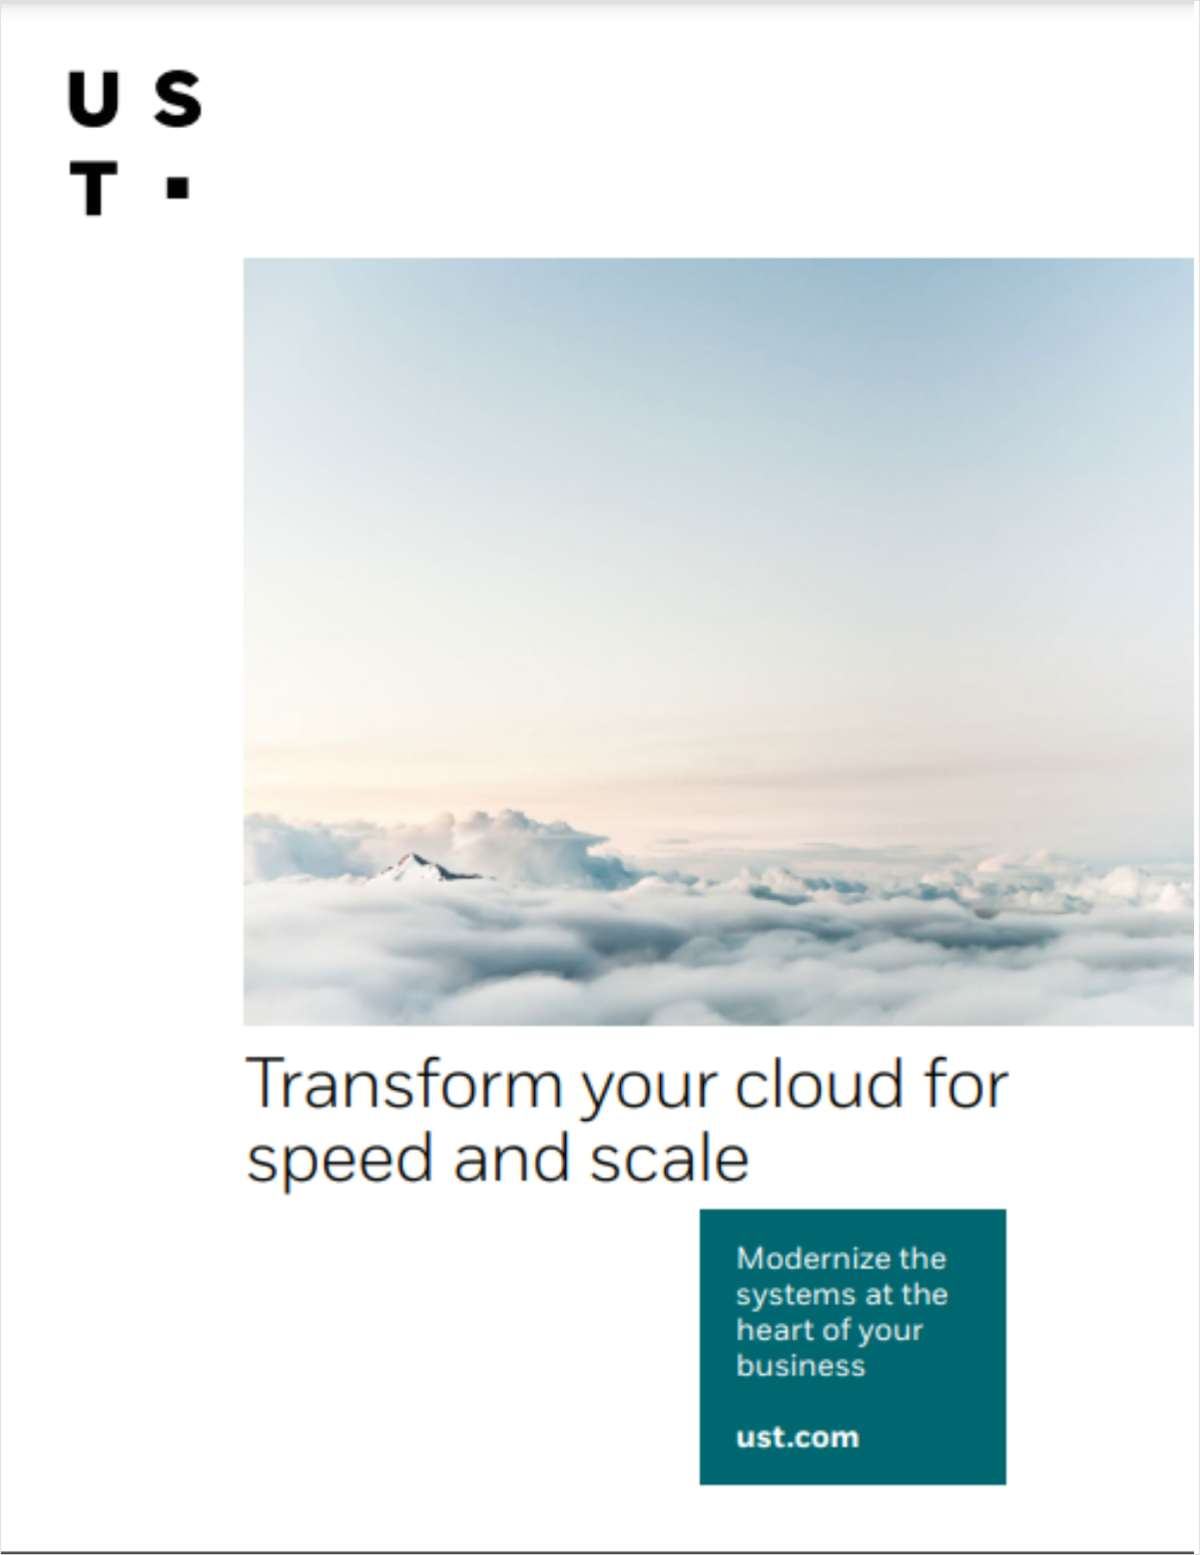 Strategy Guide: Transform your cloud for speed and scale